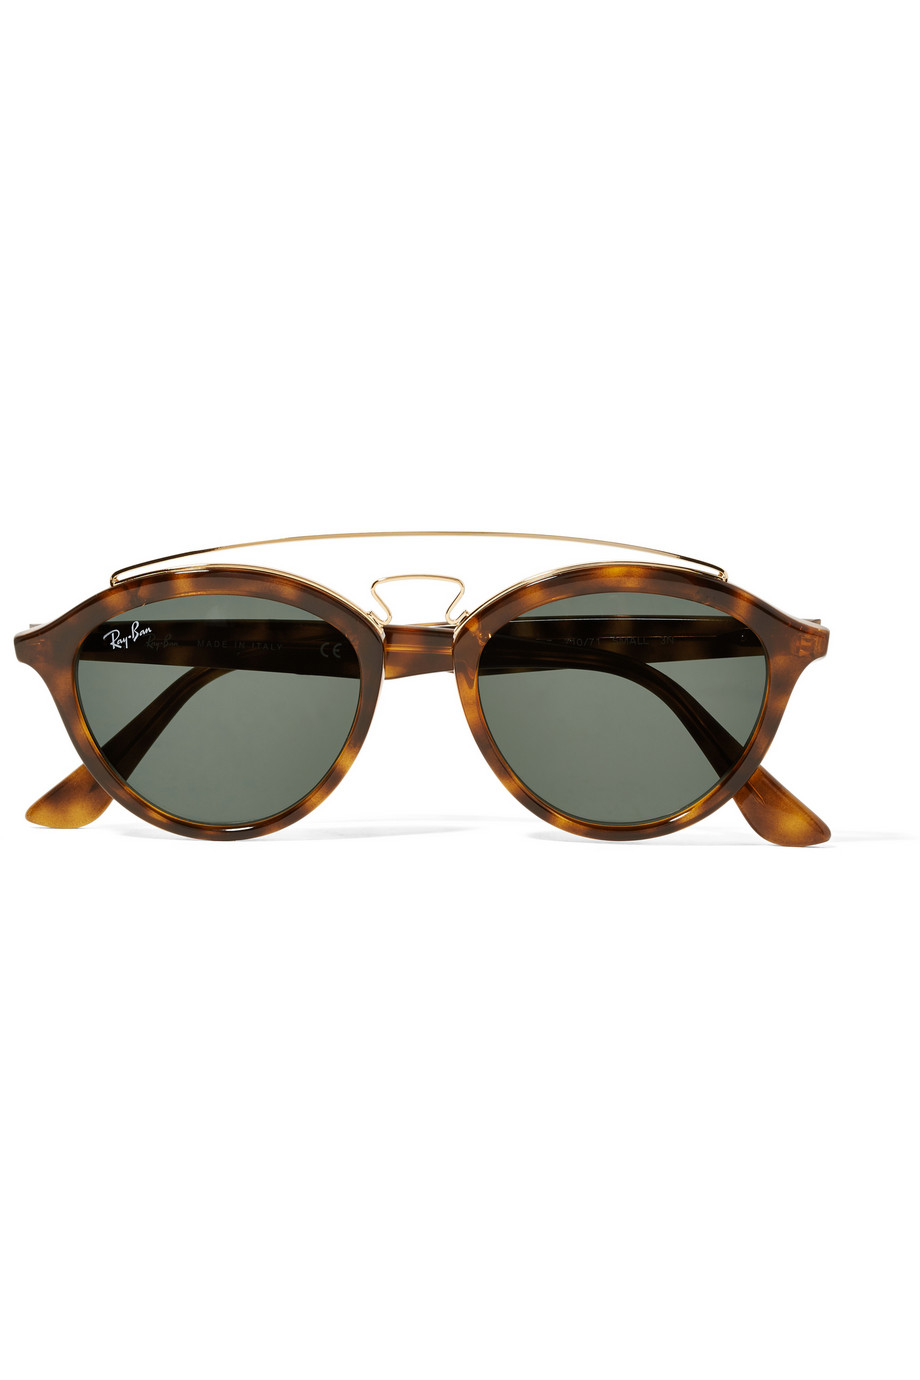 Ray Ban Round Frame Sunglasses : Ray-ban Round-frame Acetate And Gold-tone Sunglasses in ...